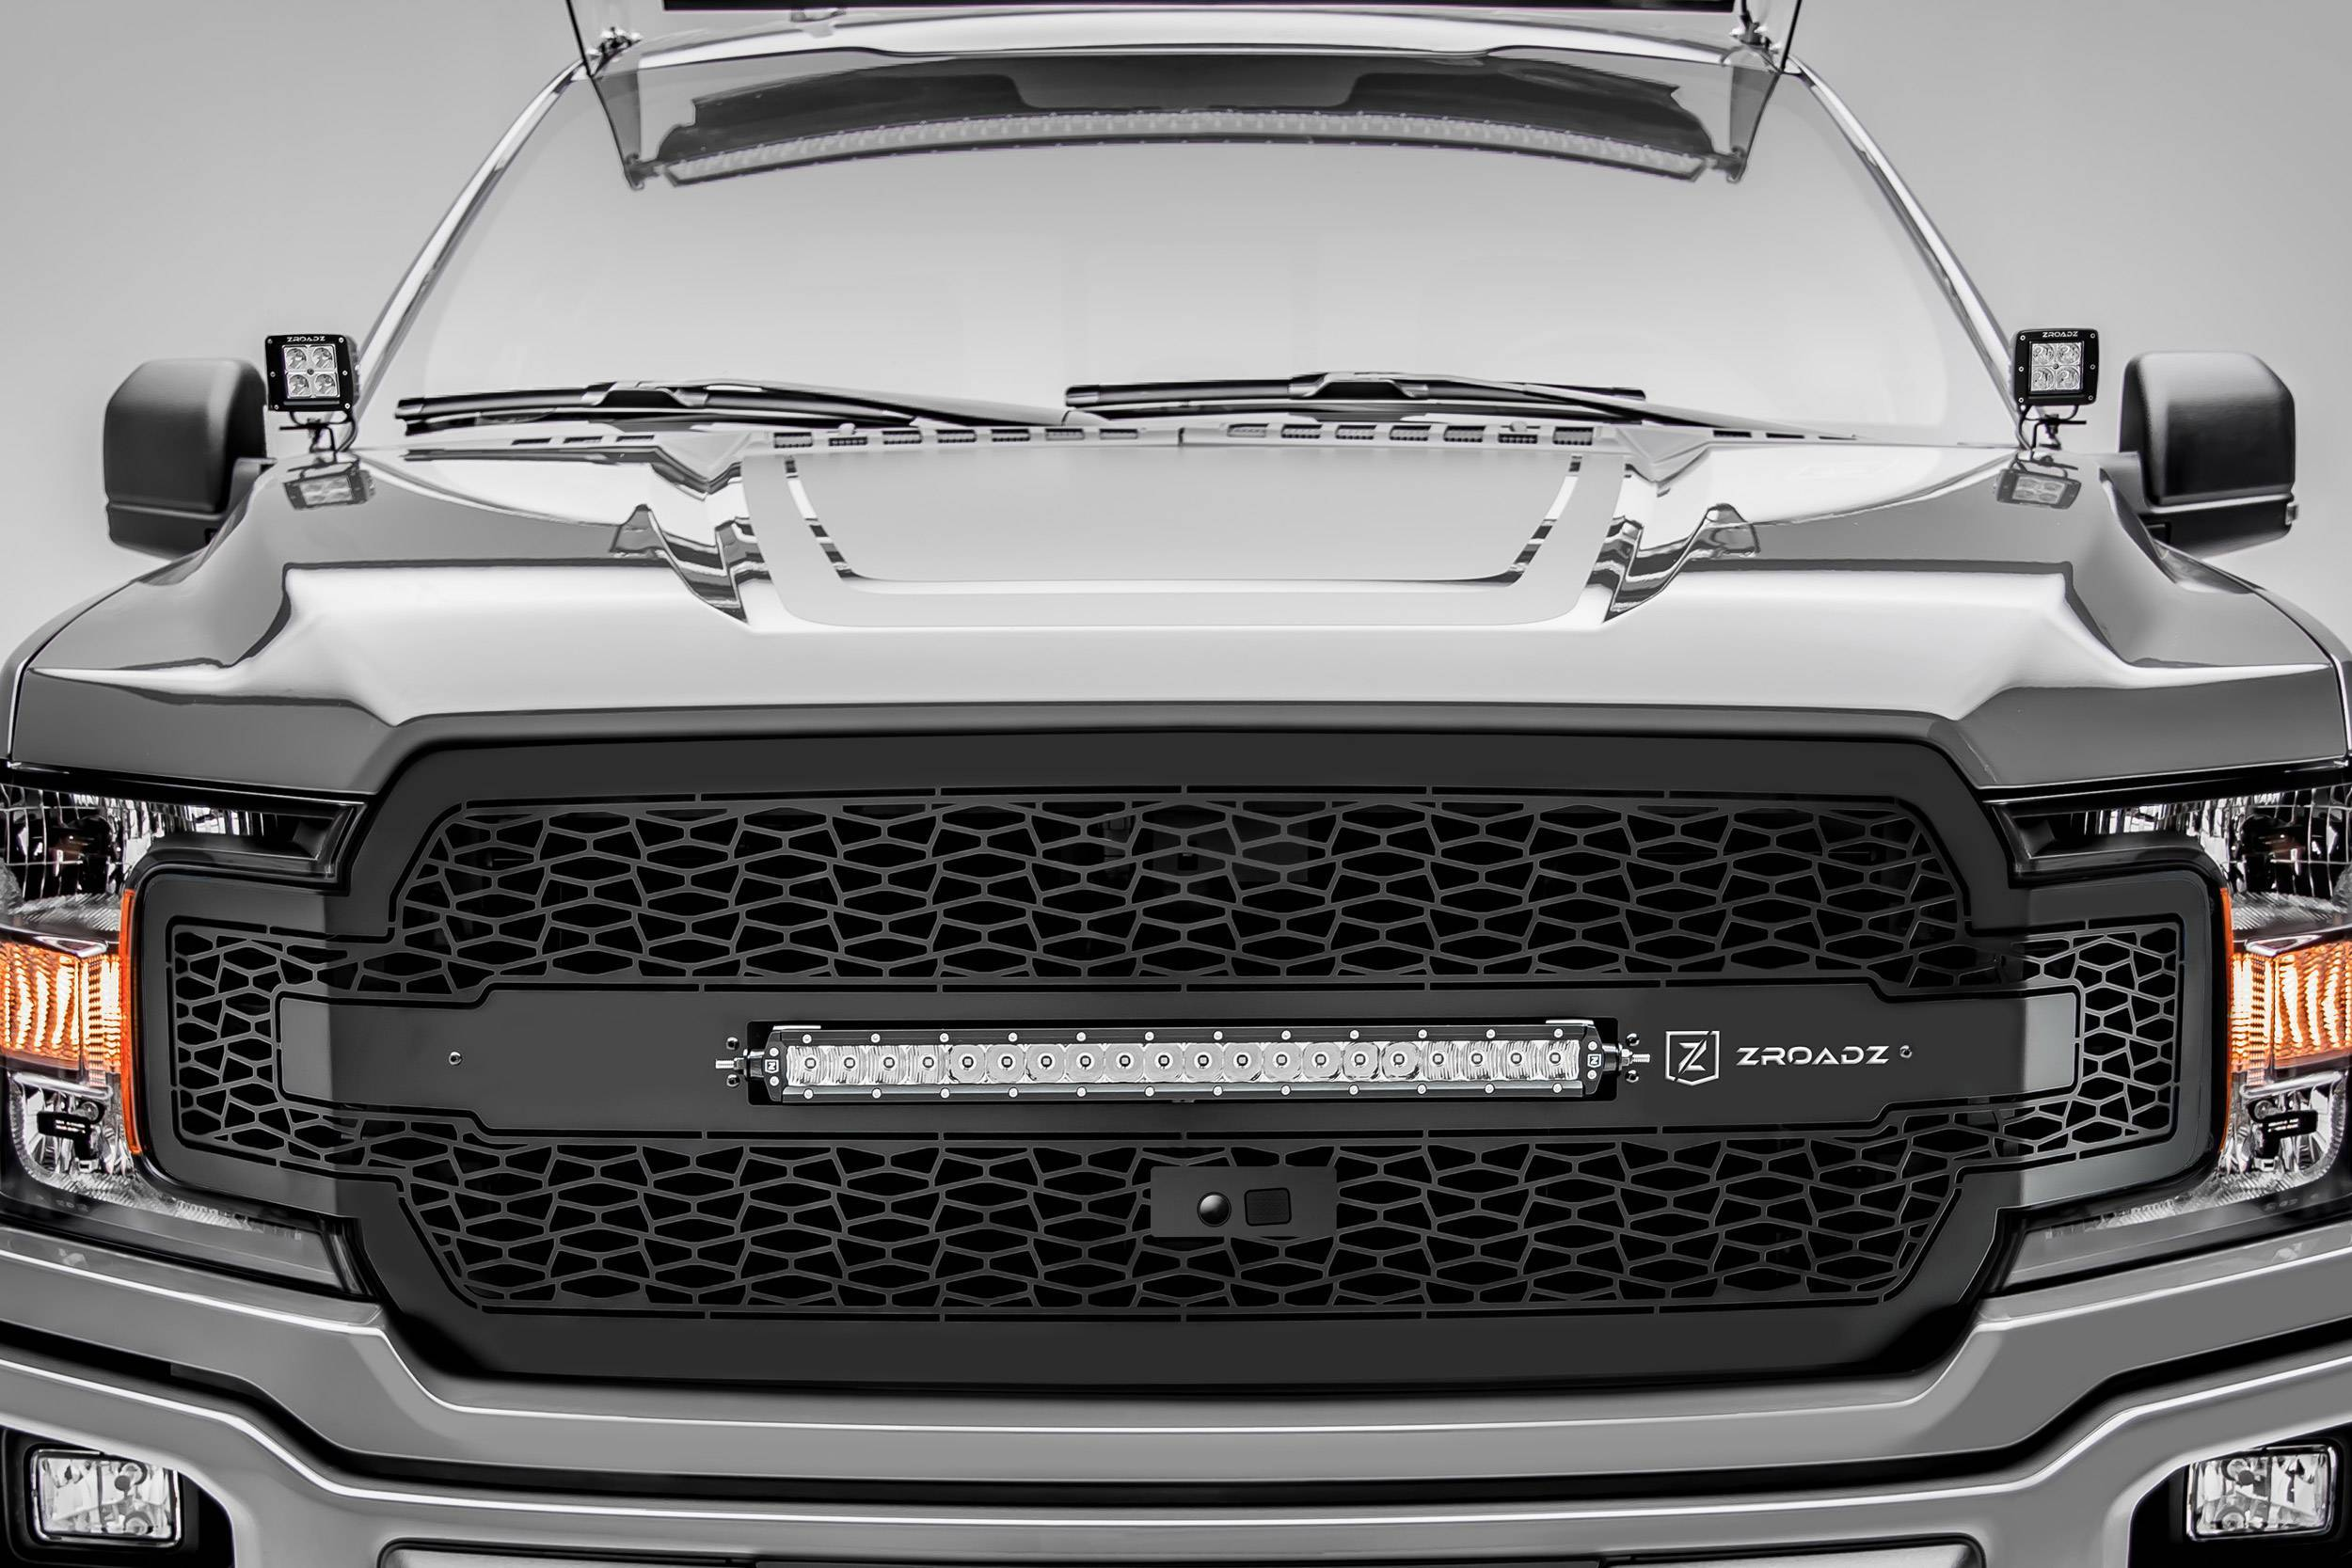 T-REX GRILLES - 2018-2020 F-150 ZROADZ Grille, Black, 1 Pc, Replacement with 20 Inch LED, Fits Vehicles with Camera - PN #Z315811